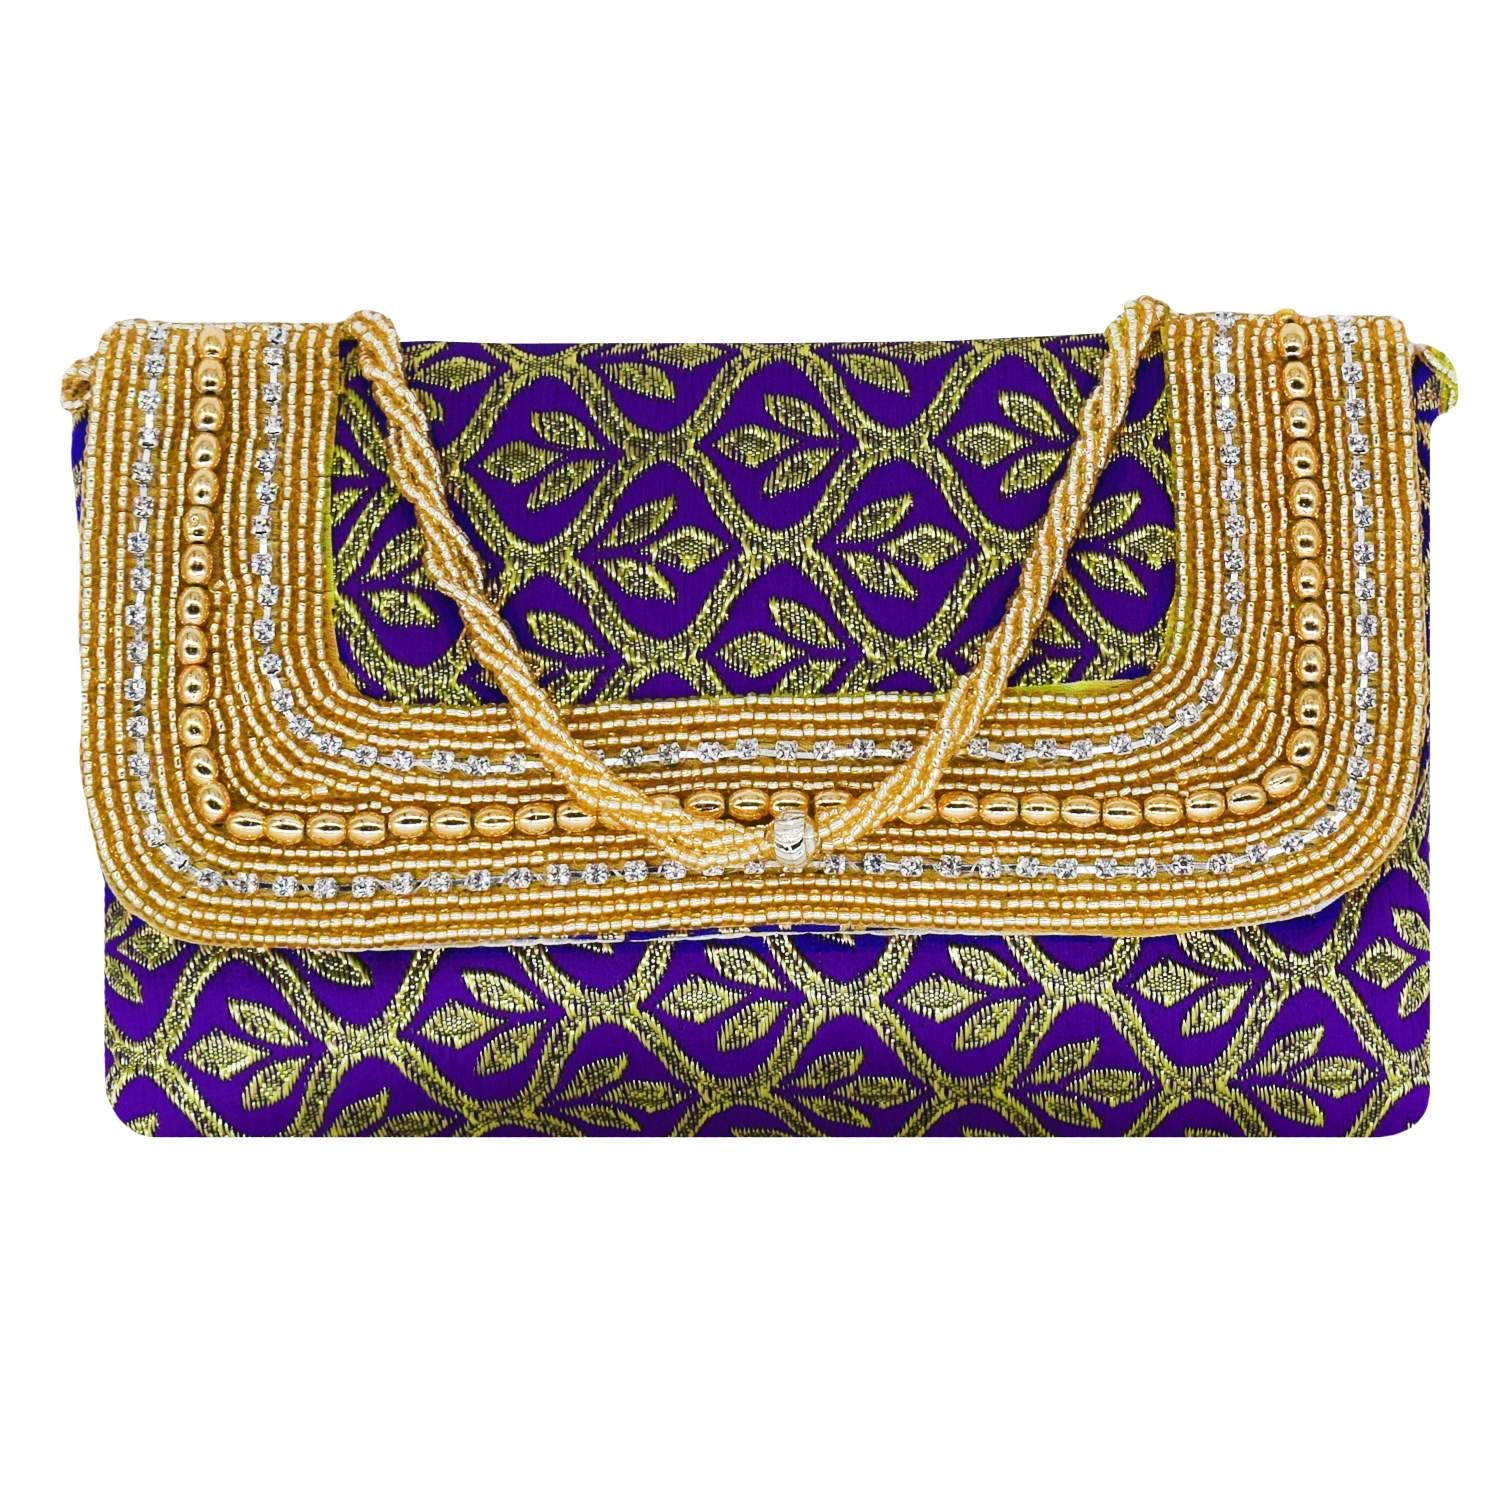 Ethnic Beads and Diamond Studded Silk Clutch (Purple) - Bagaholics Gift